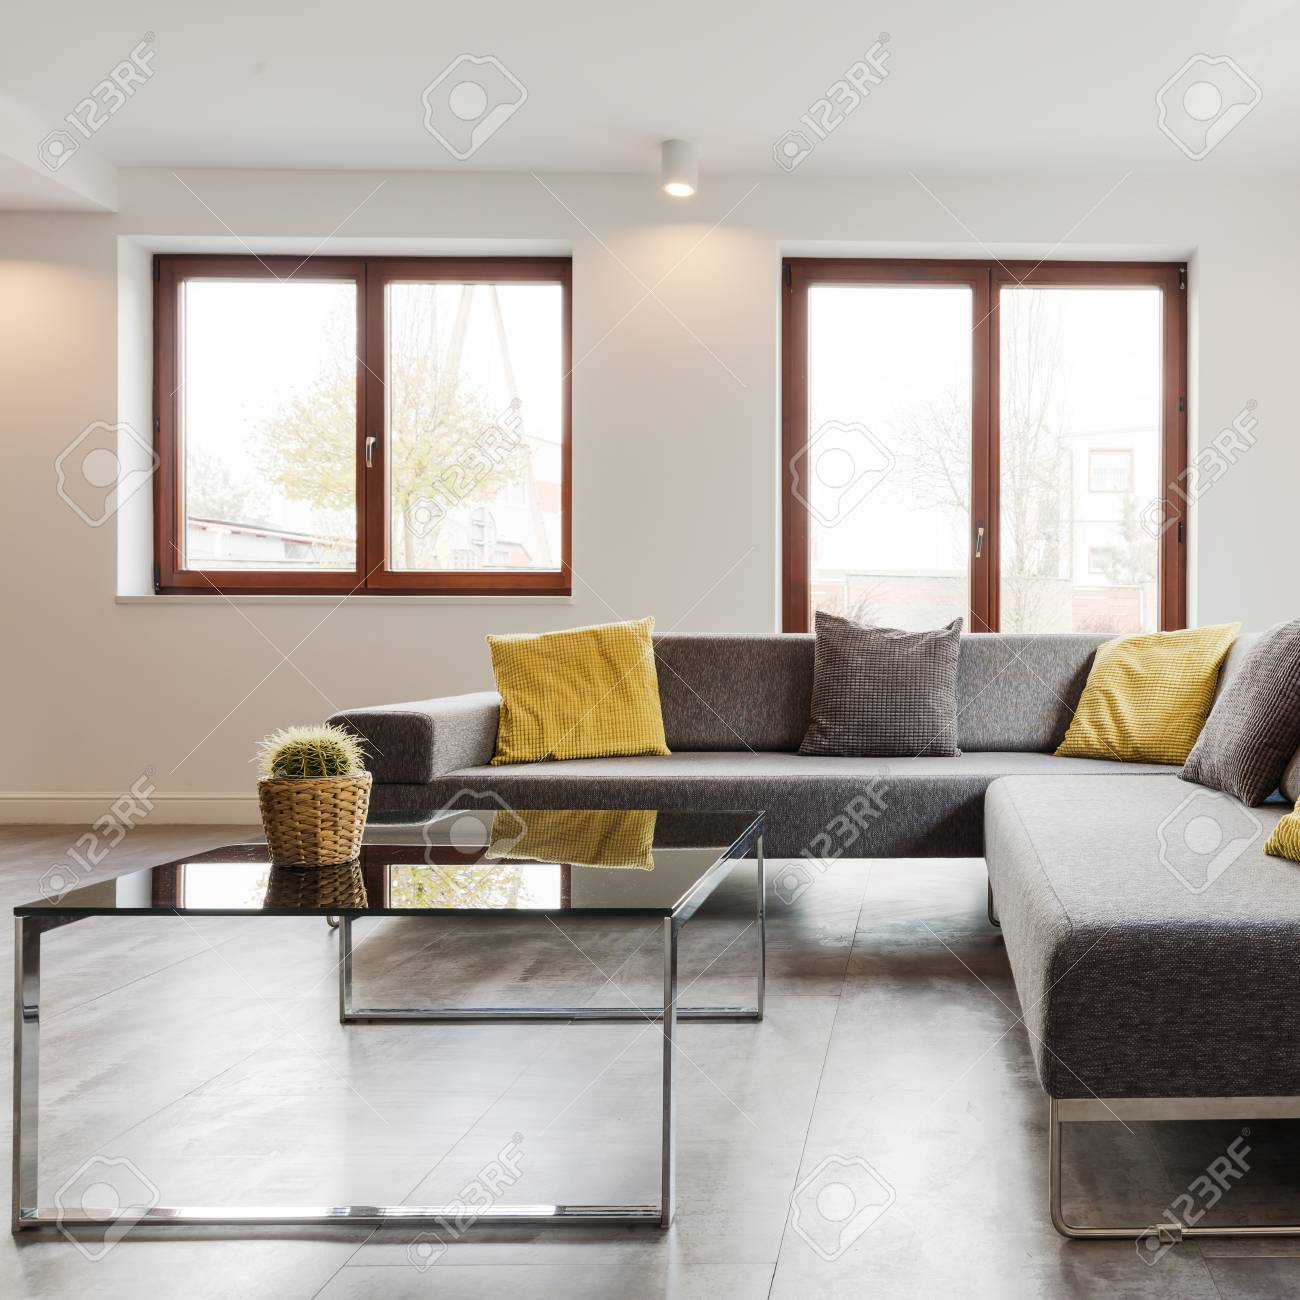 Large Corner Sofa And Glass Coffee Table In A Very Modern And